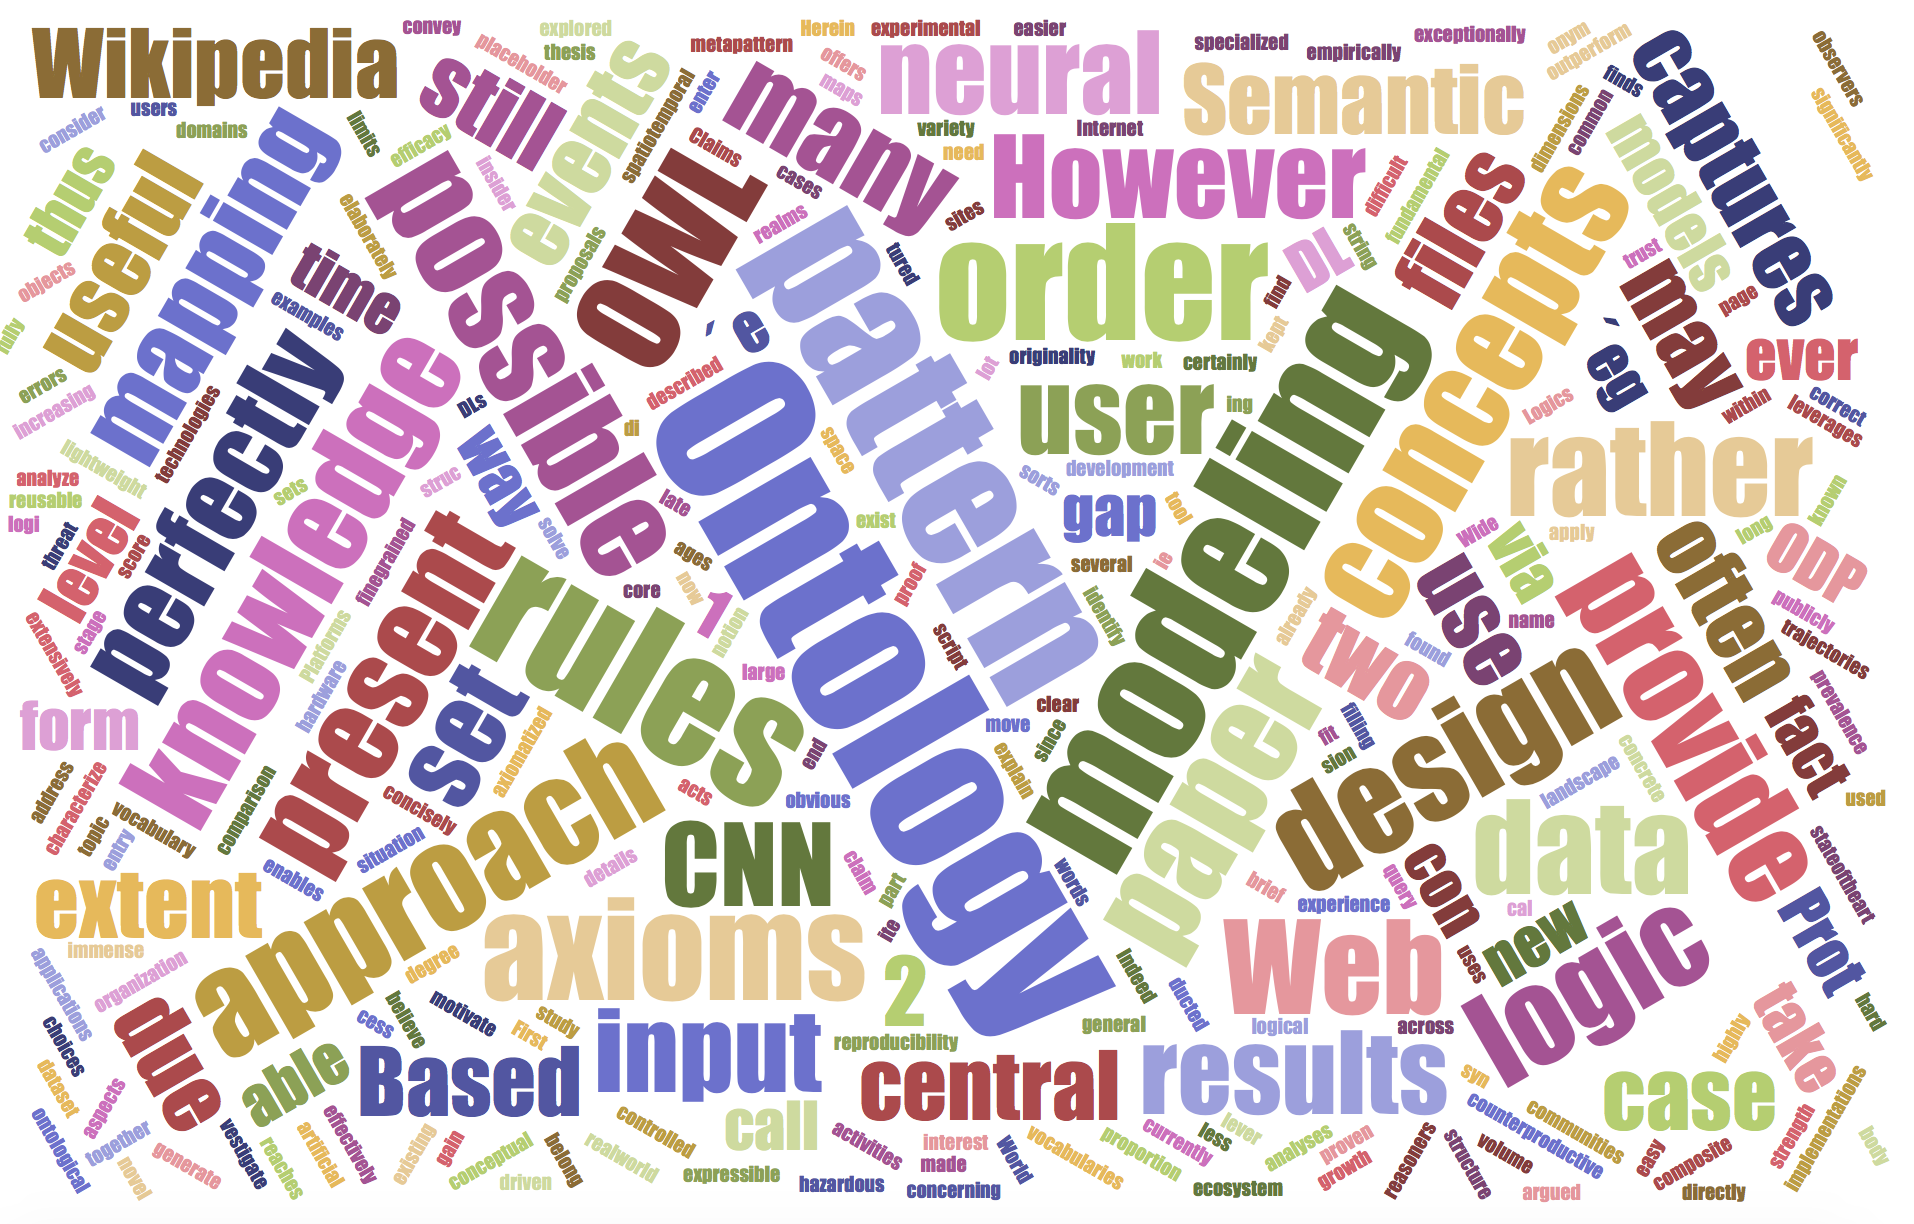 2017 DaSe Lab paper abstracts word cloud diagram